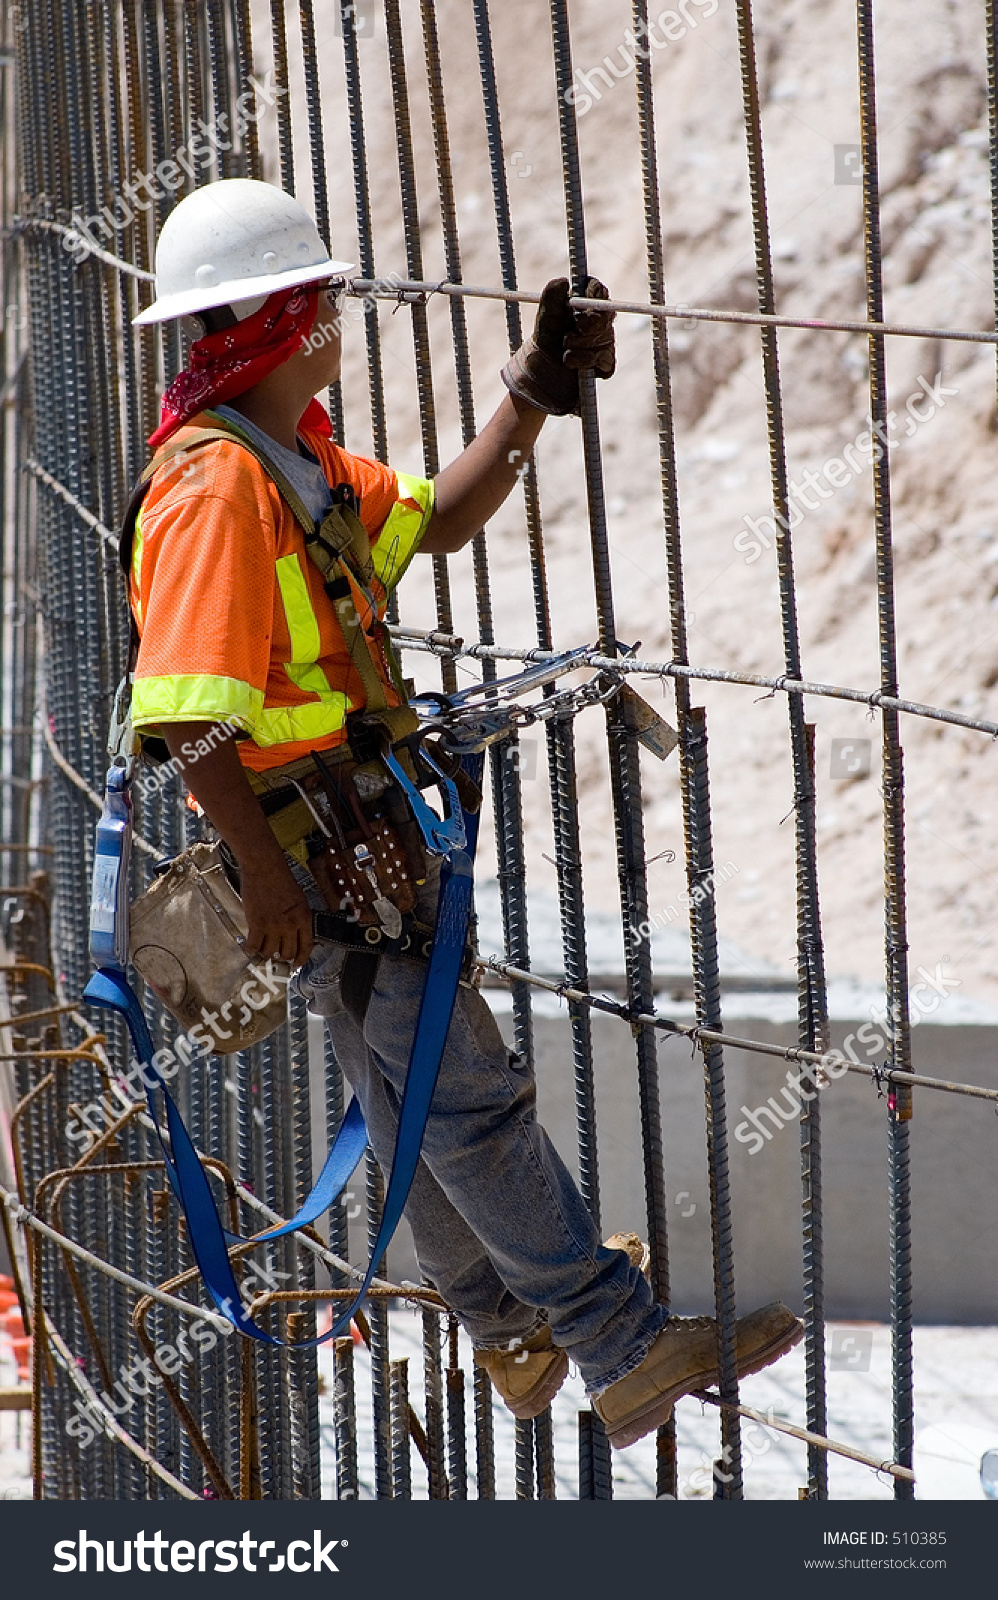 construction worker tying rebar for concrete reinforcement on a road construction project rebar worker